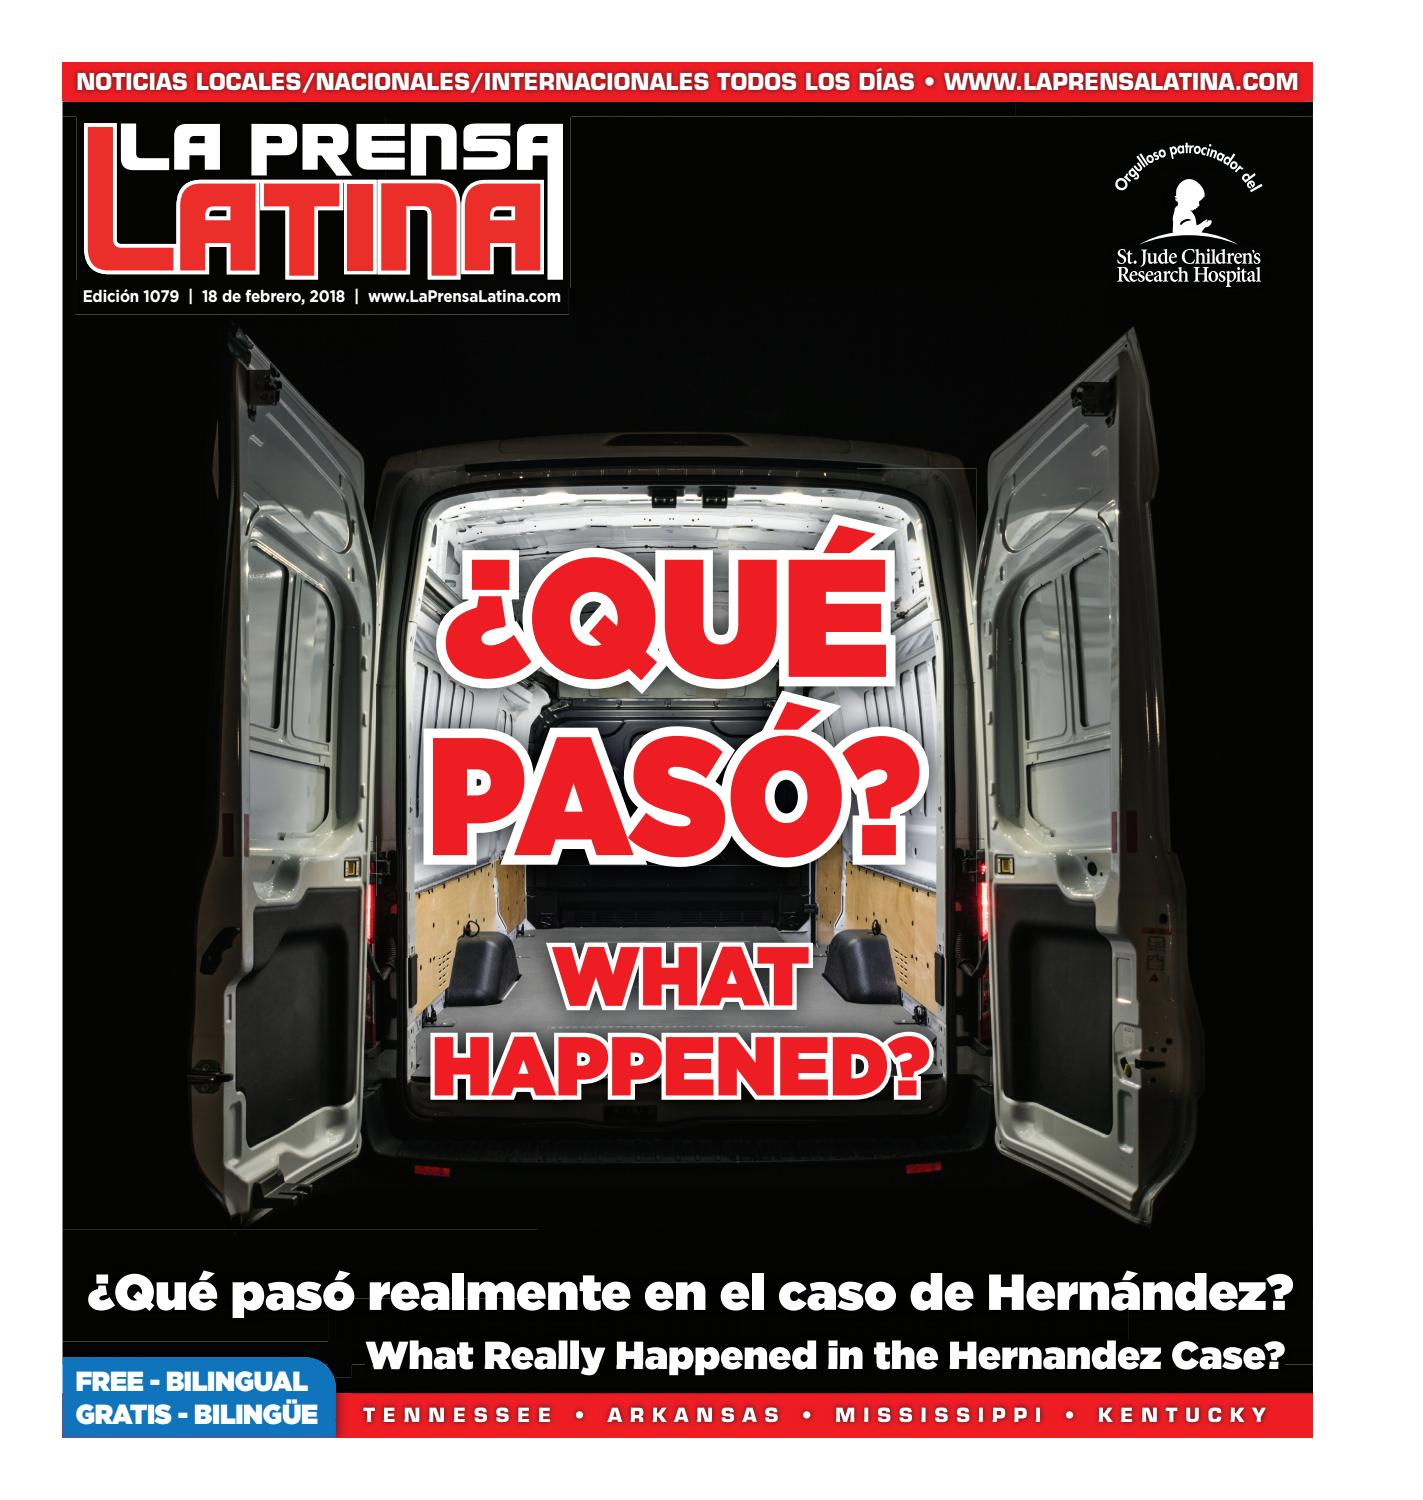 La Prensa Latina 1 56 02 18 2018 by La Prensa Latina - issuu